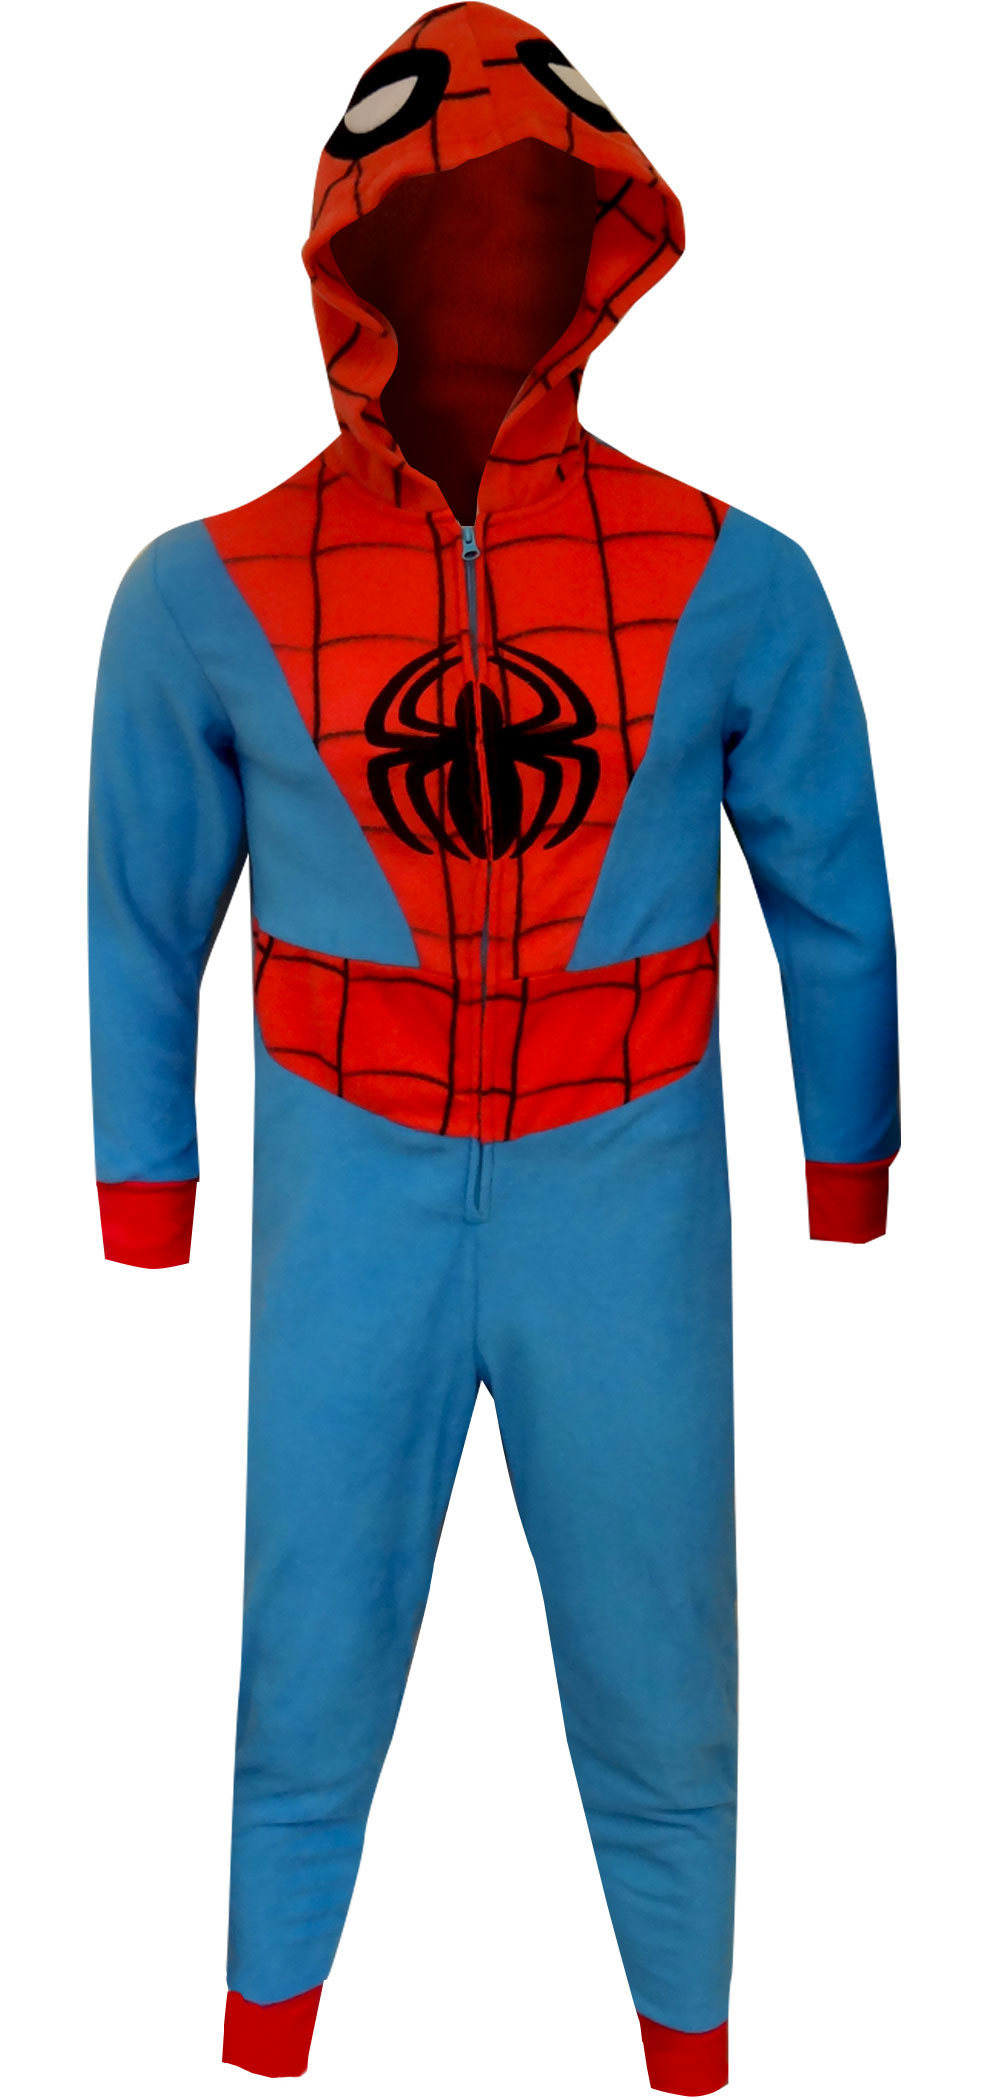 Spider-man Baby & Toddler Sleepwear. Spider-Man. Spider-man Baby & Toddler Sleepwear. Showing 16 of 16 results that match your query. Search Product Result. Product - Spiderman Toddler Boy Robe And Pajama 3-Clearance. Product Image. Price $ 6. Out of stock. Product Title.